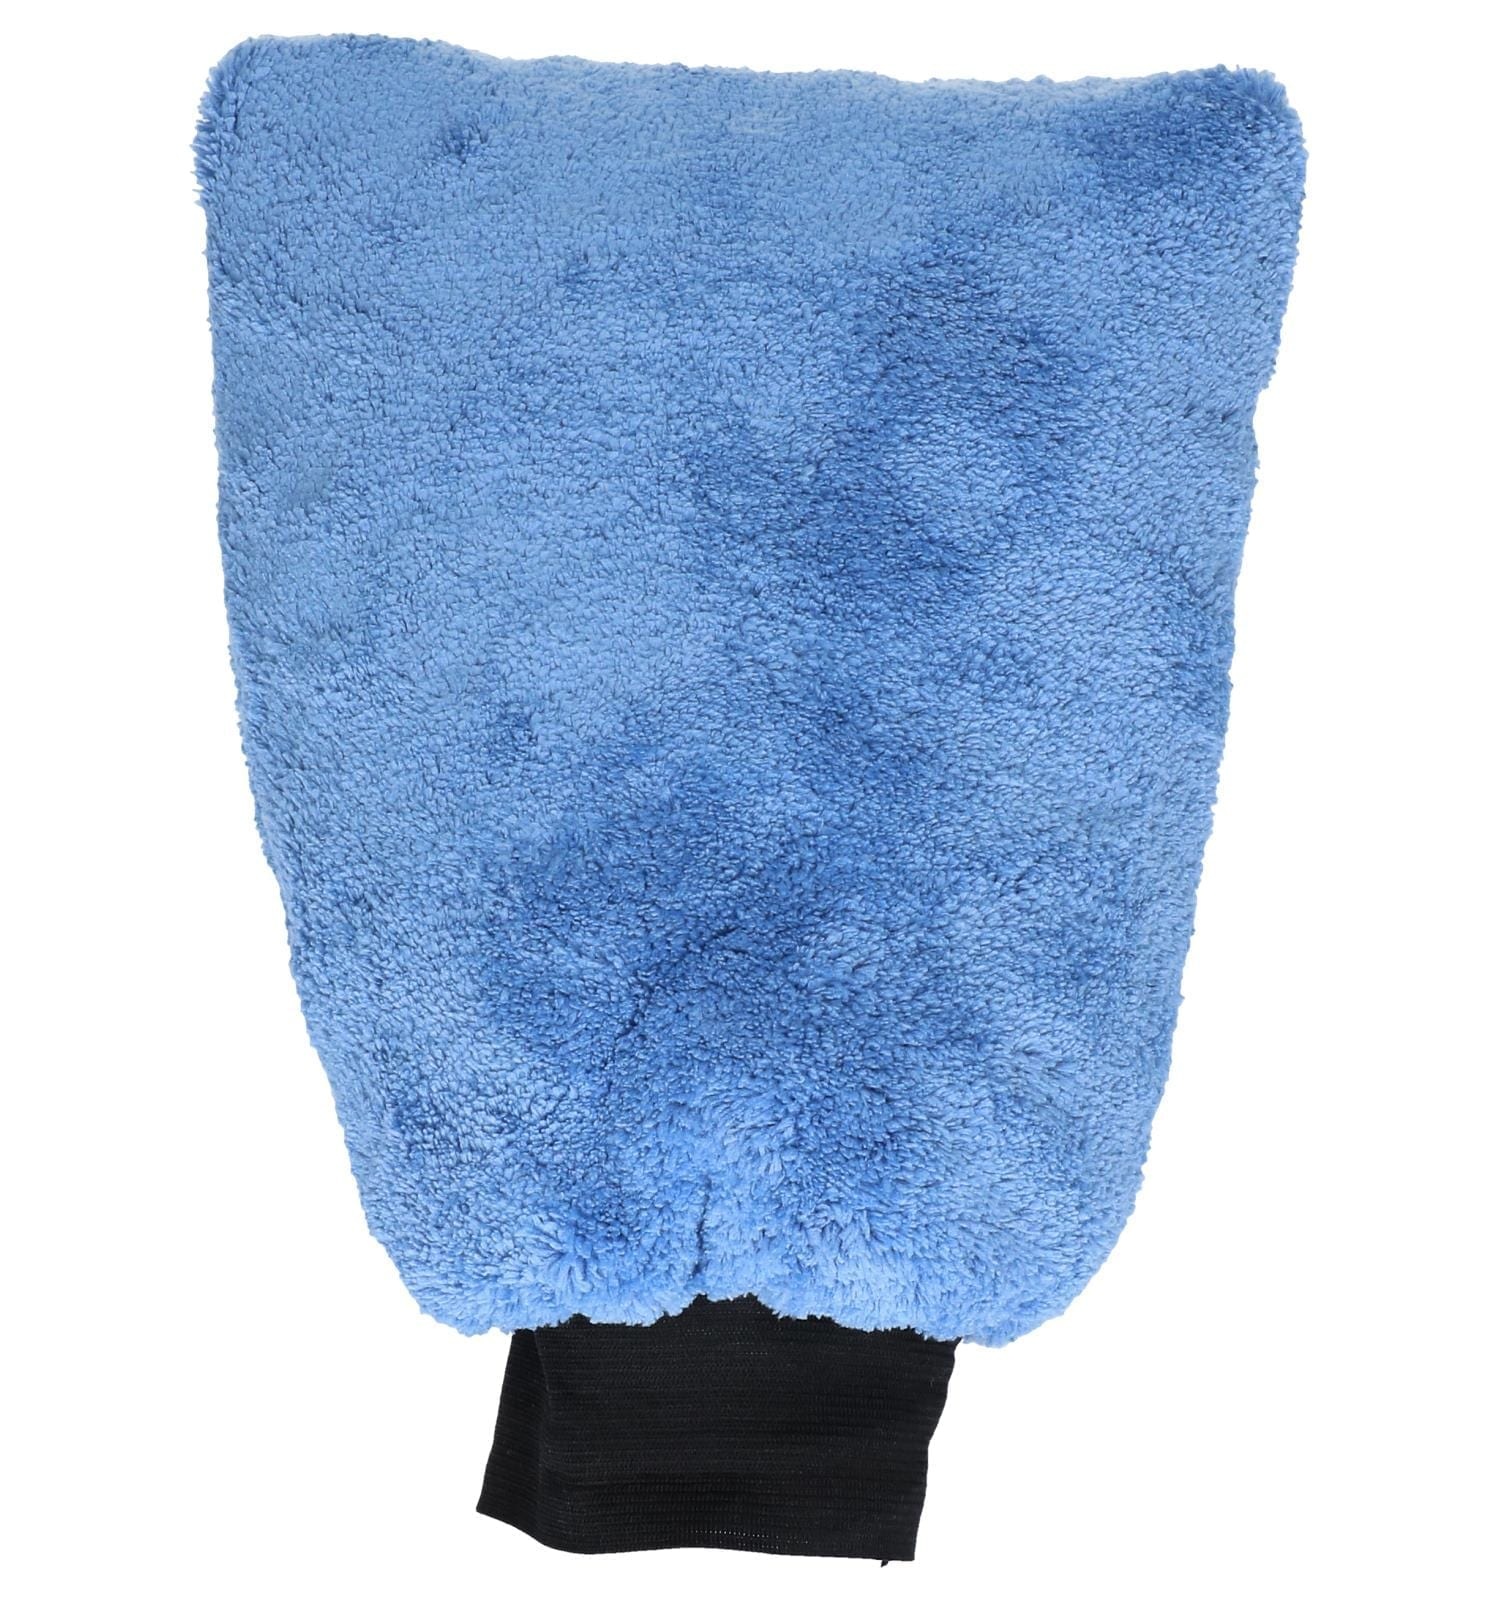 Microfibre Wash Mitt – Blue